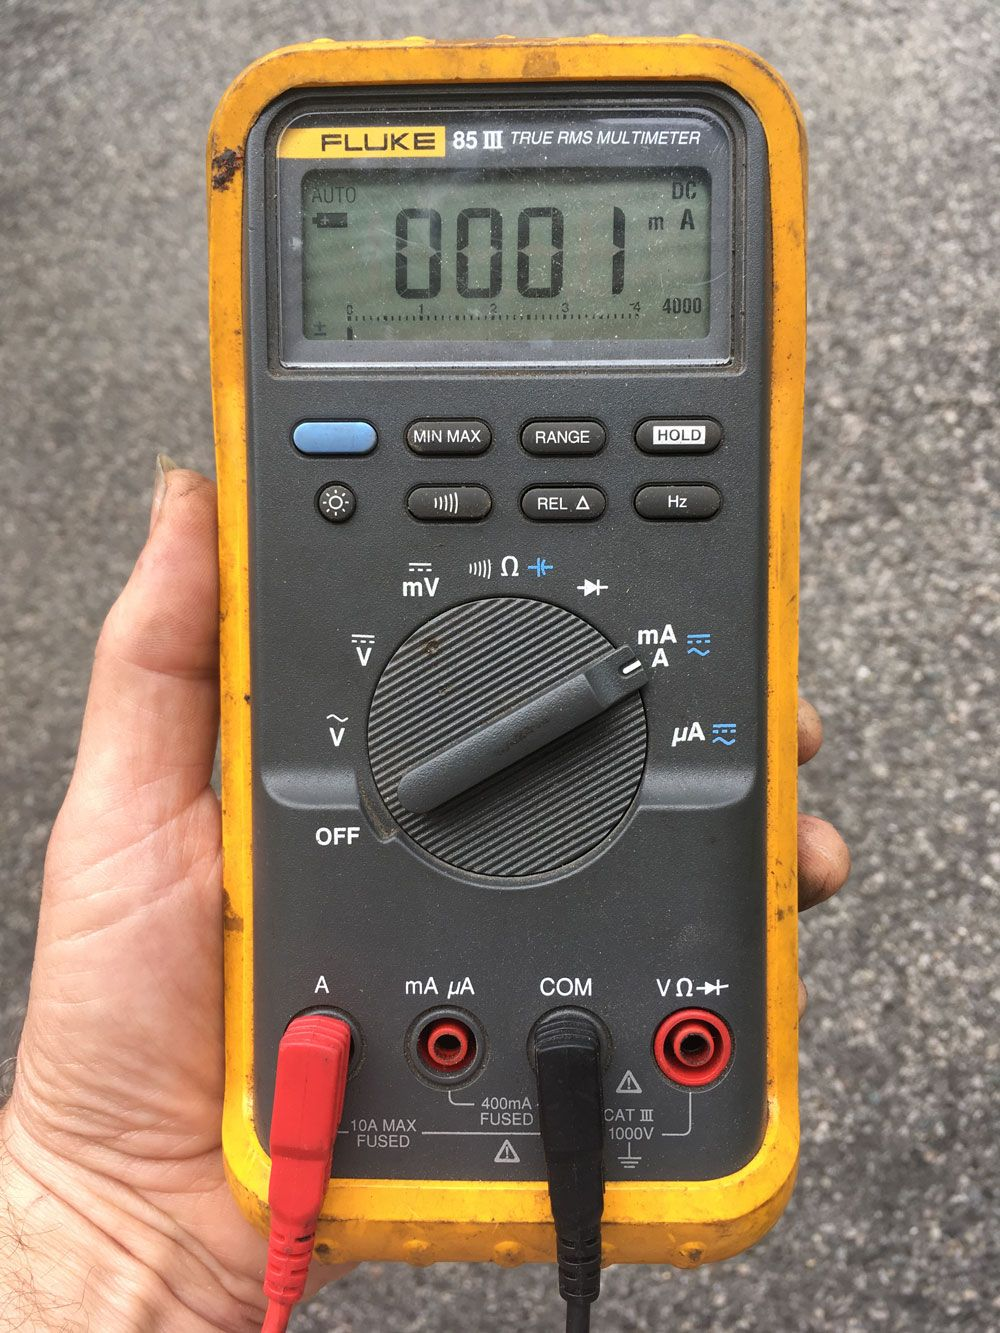 First we discussed how to use a multimeter for measuring